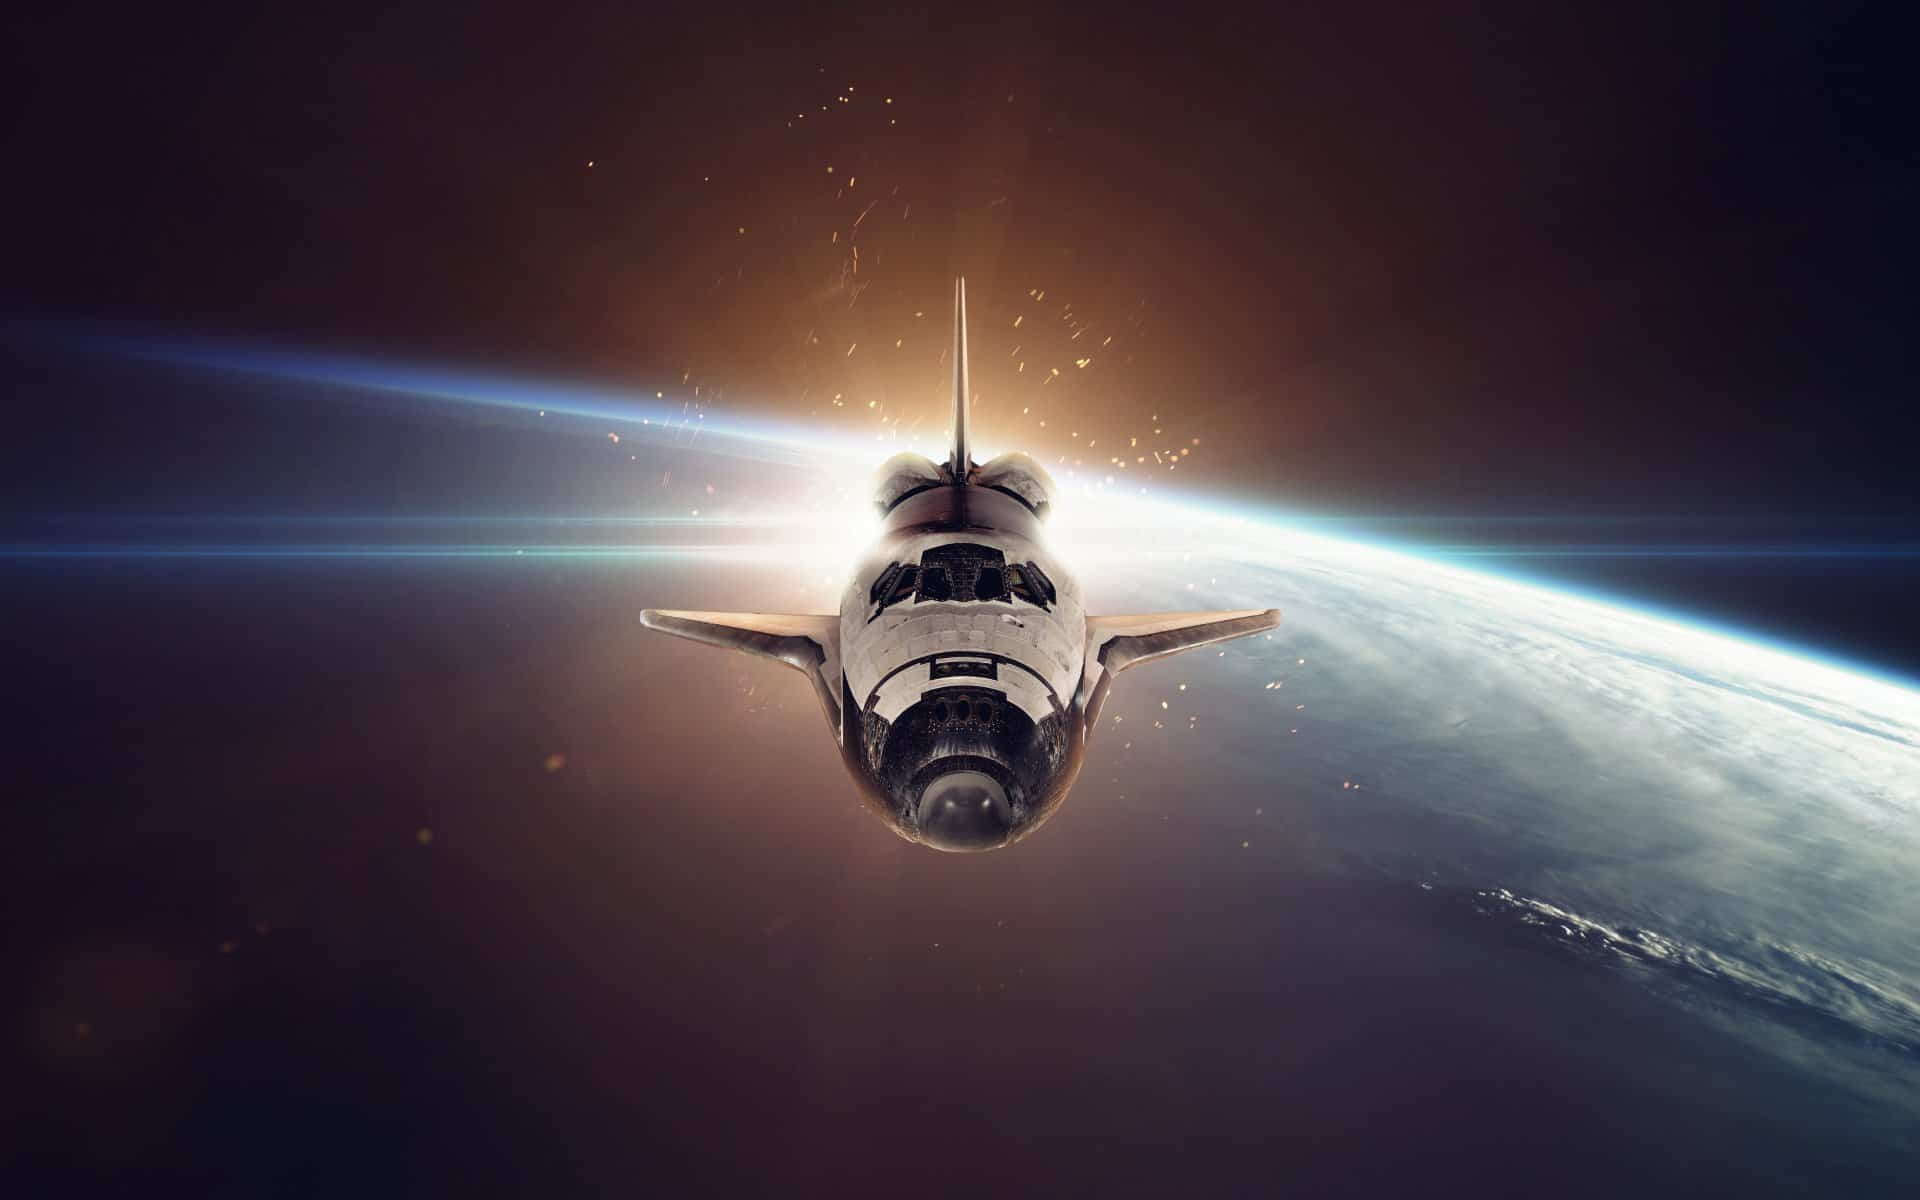 interesting space shuttle mission - photo #28